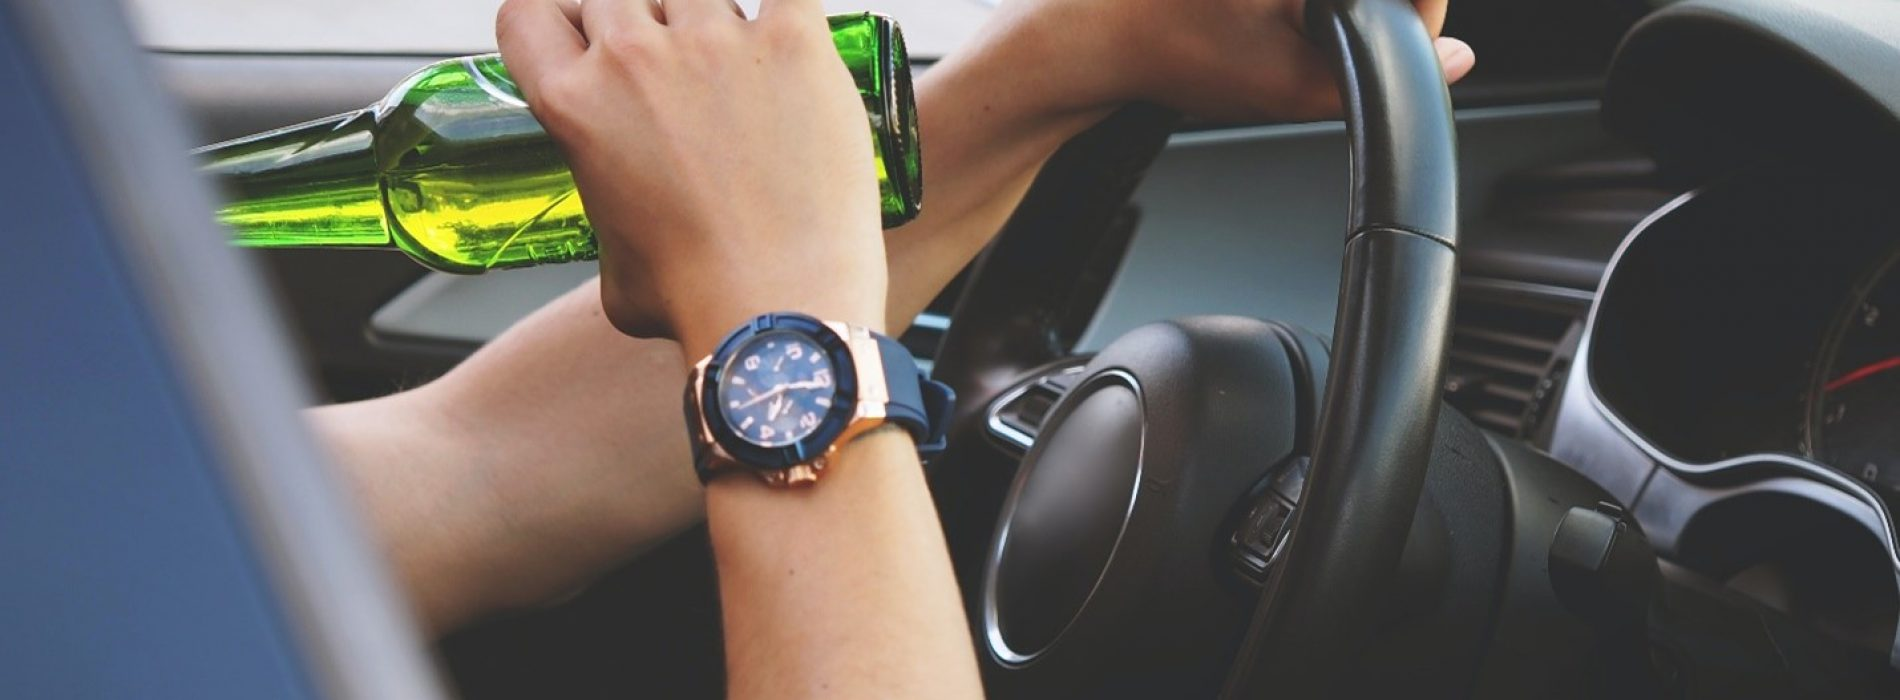 Tips to Avoid Being Stopped For a DUI